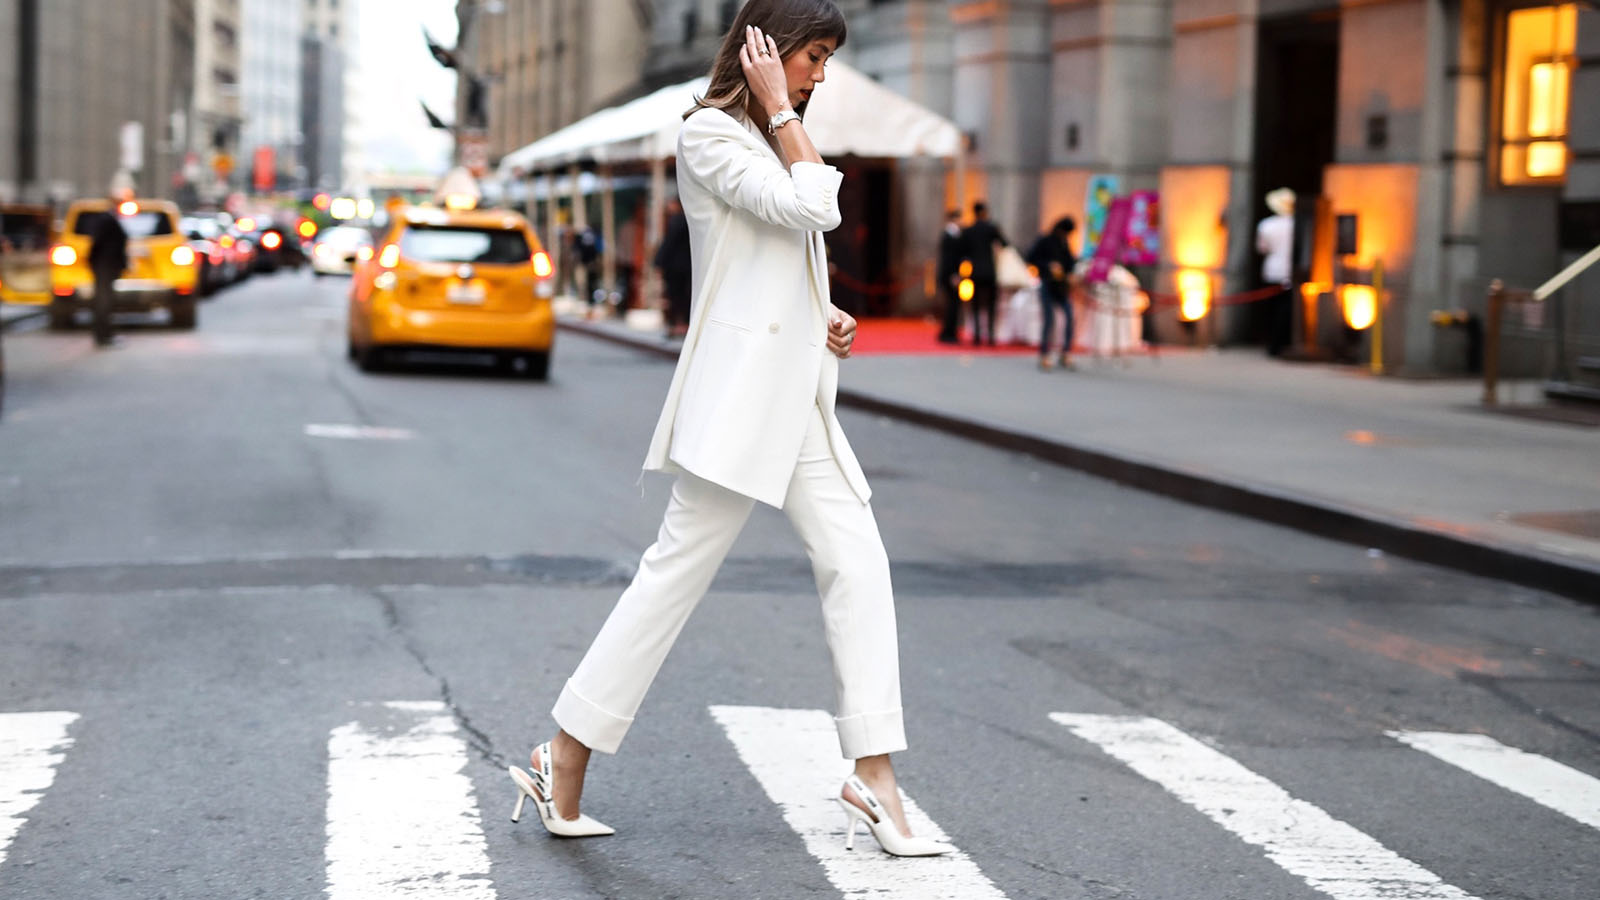 Model @CATCHERINTHESTYLE crosses the street while wearing an Omega Constellation watch